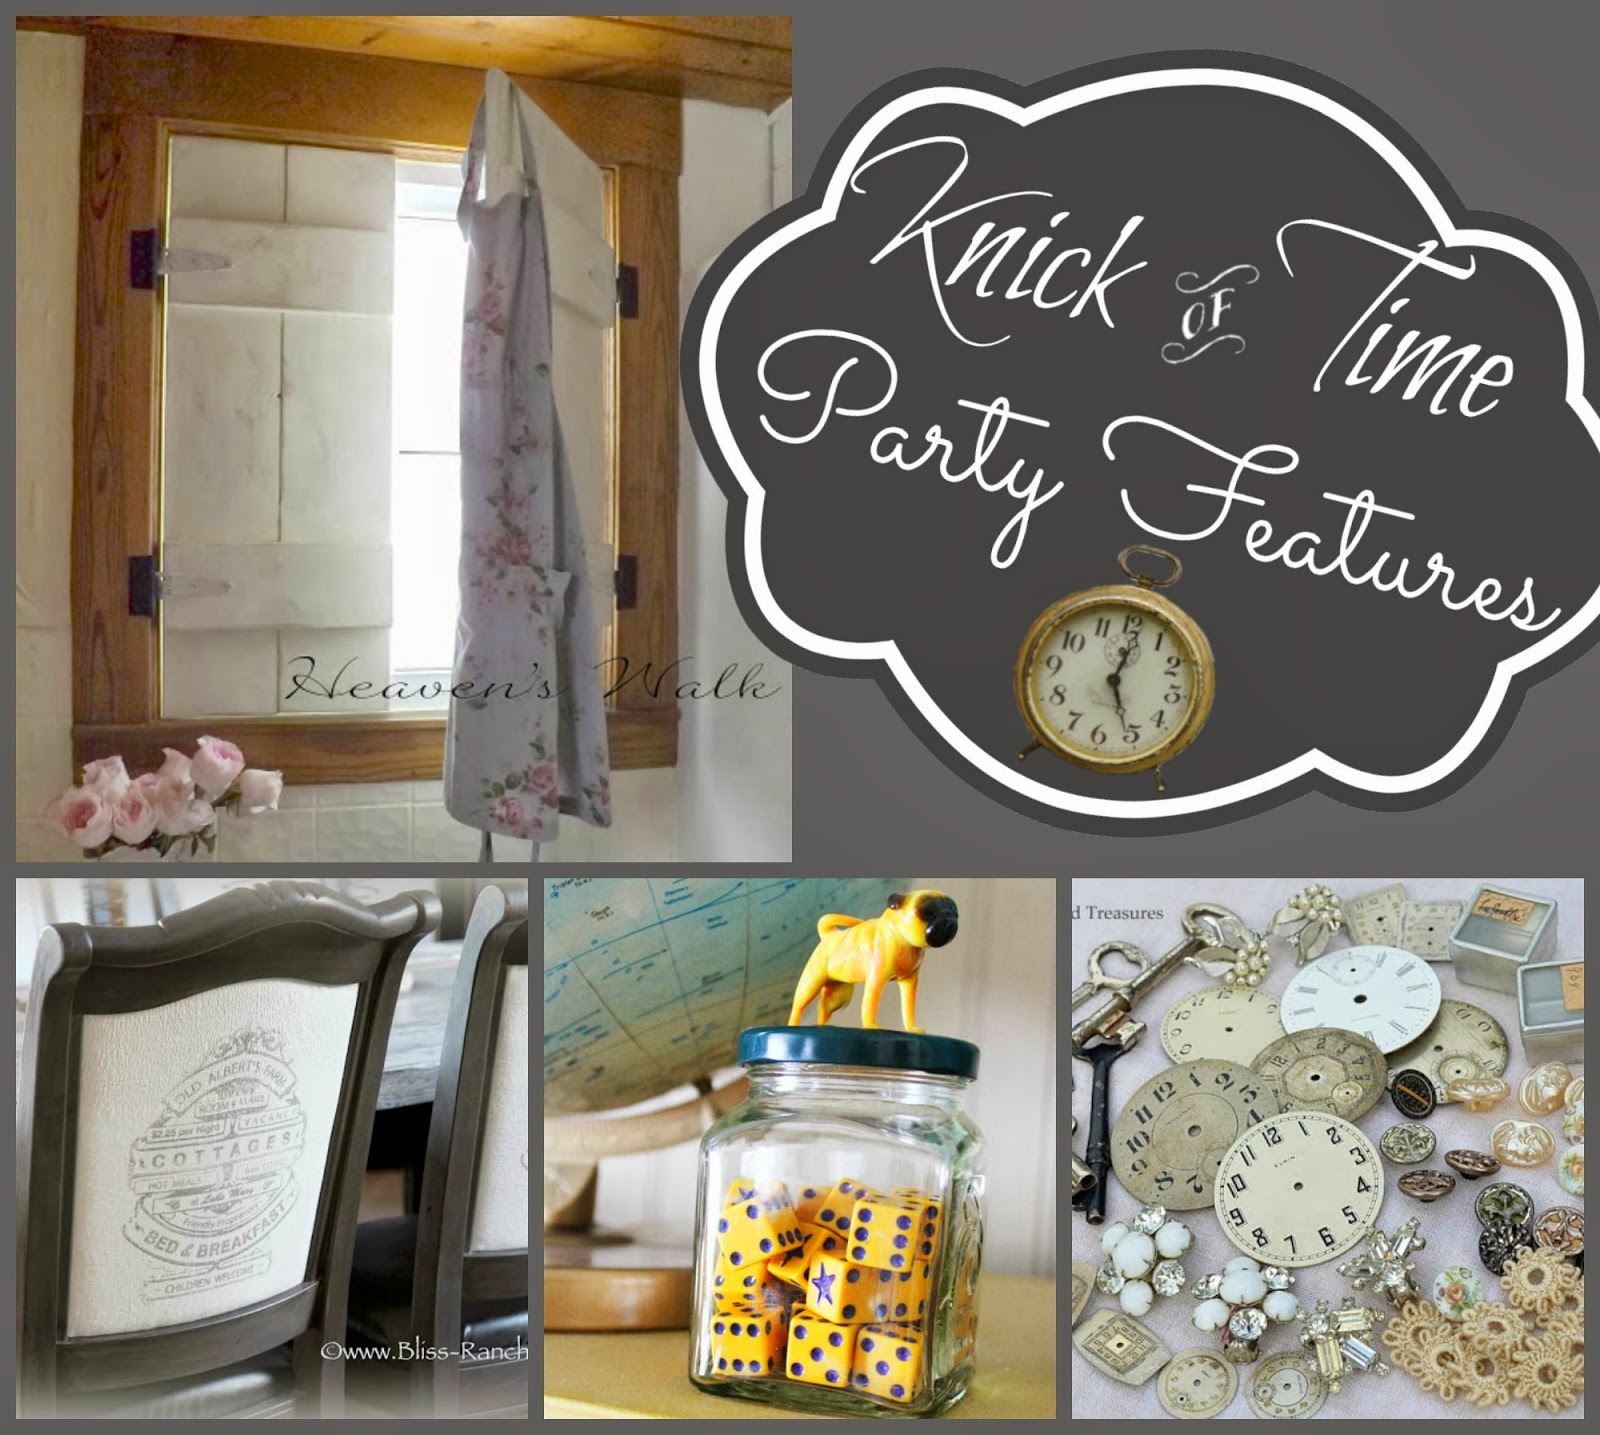 Vintage Home Decor Link Party at Knick of Time